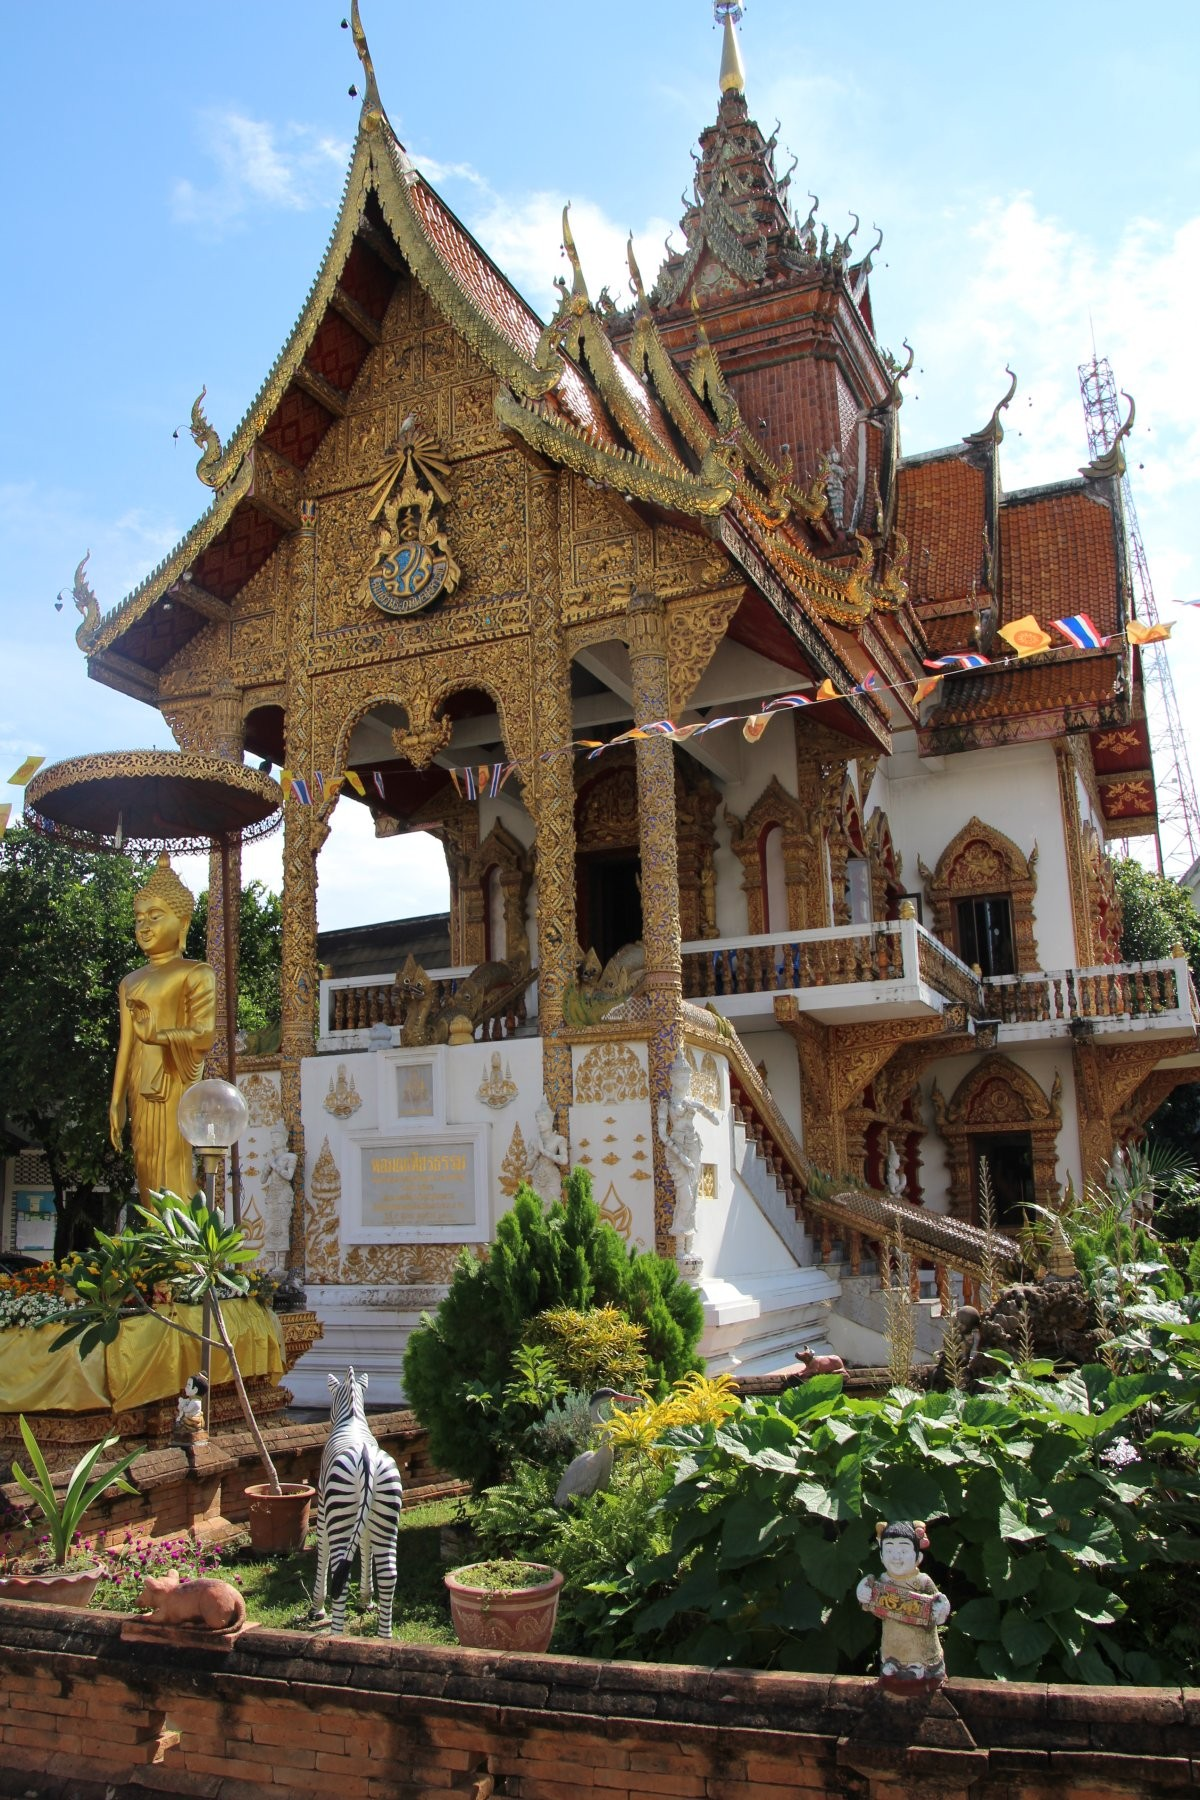 Chiang Mai - Rundgang durch die Stadt LXXIII